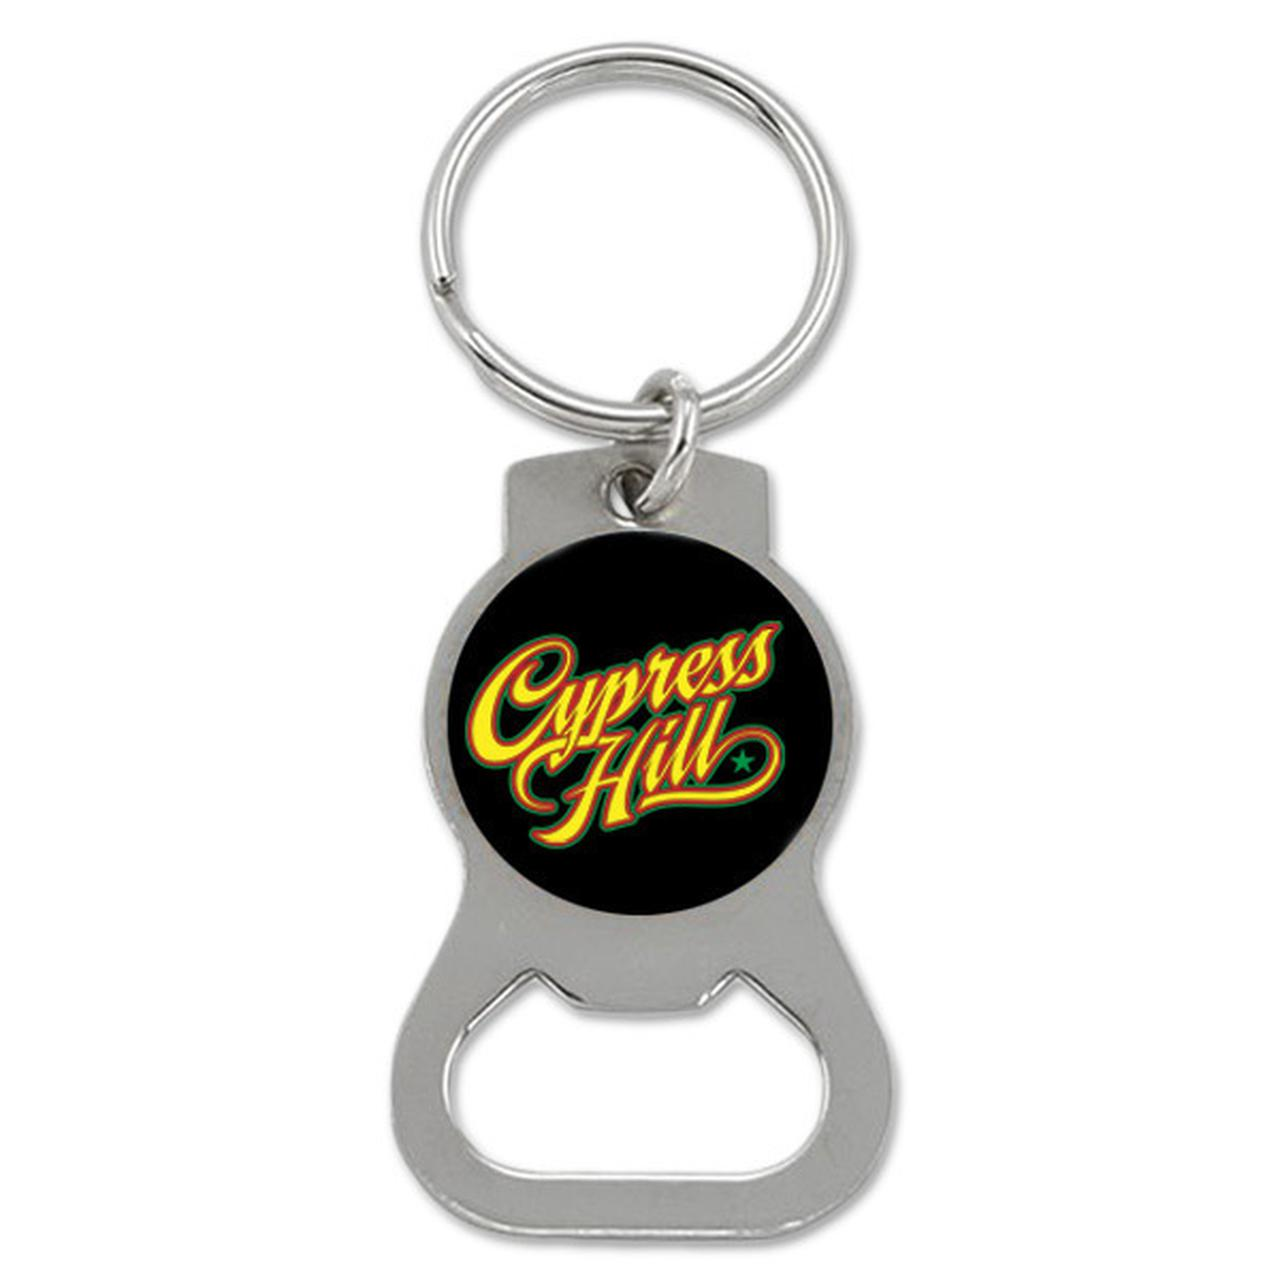 cypress hill script bottle opener keychain. Black Bedroom Furniture Sets. Home Design Ideas